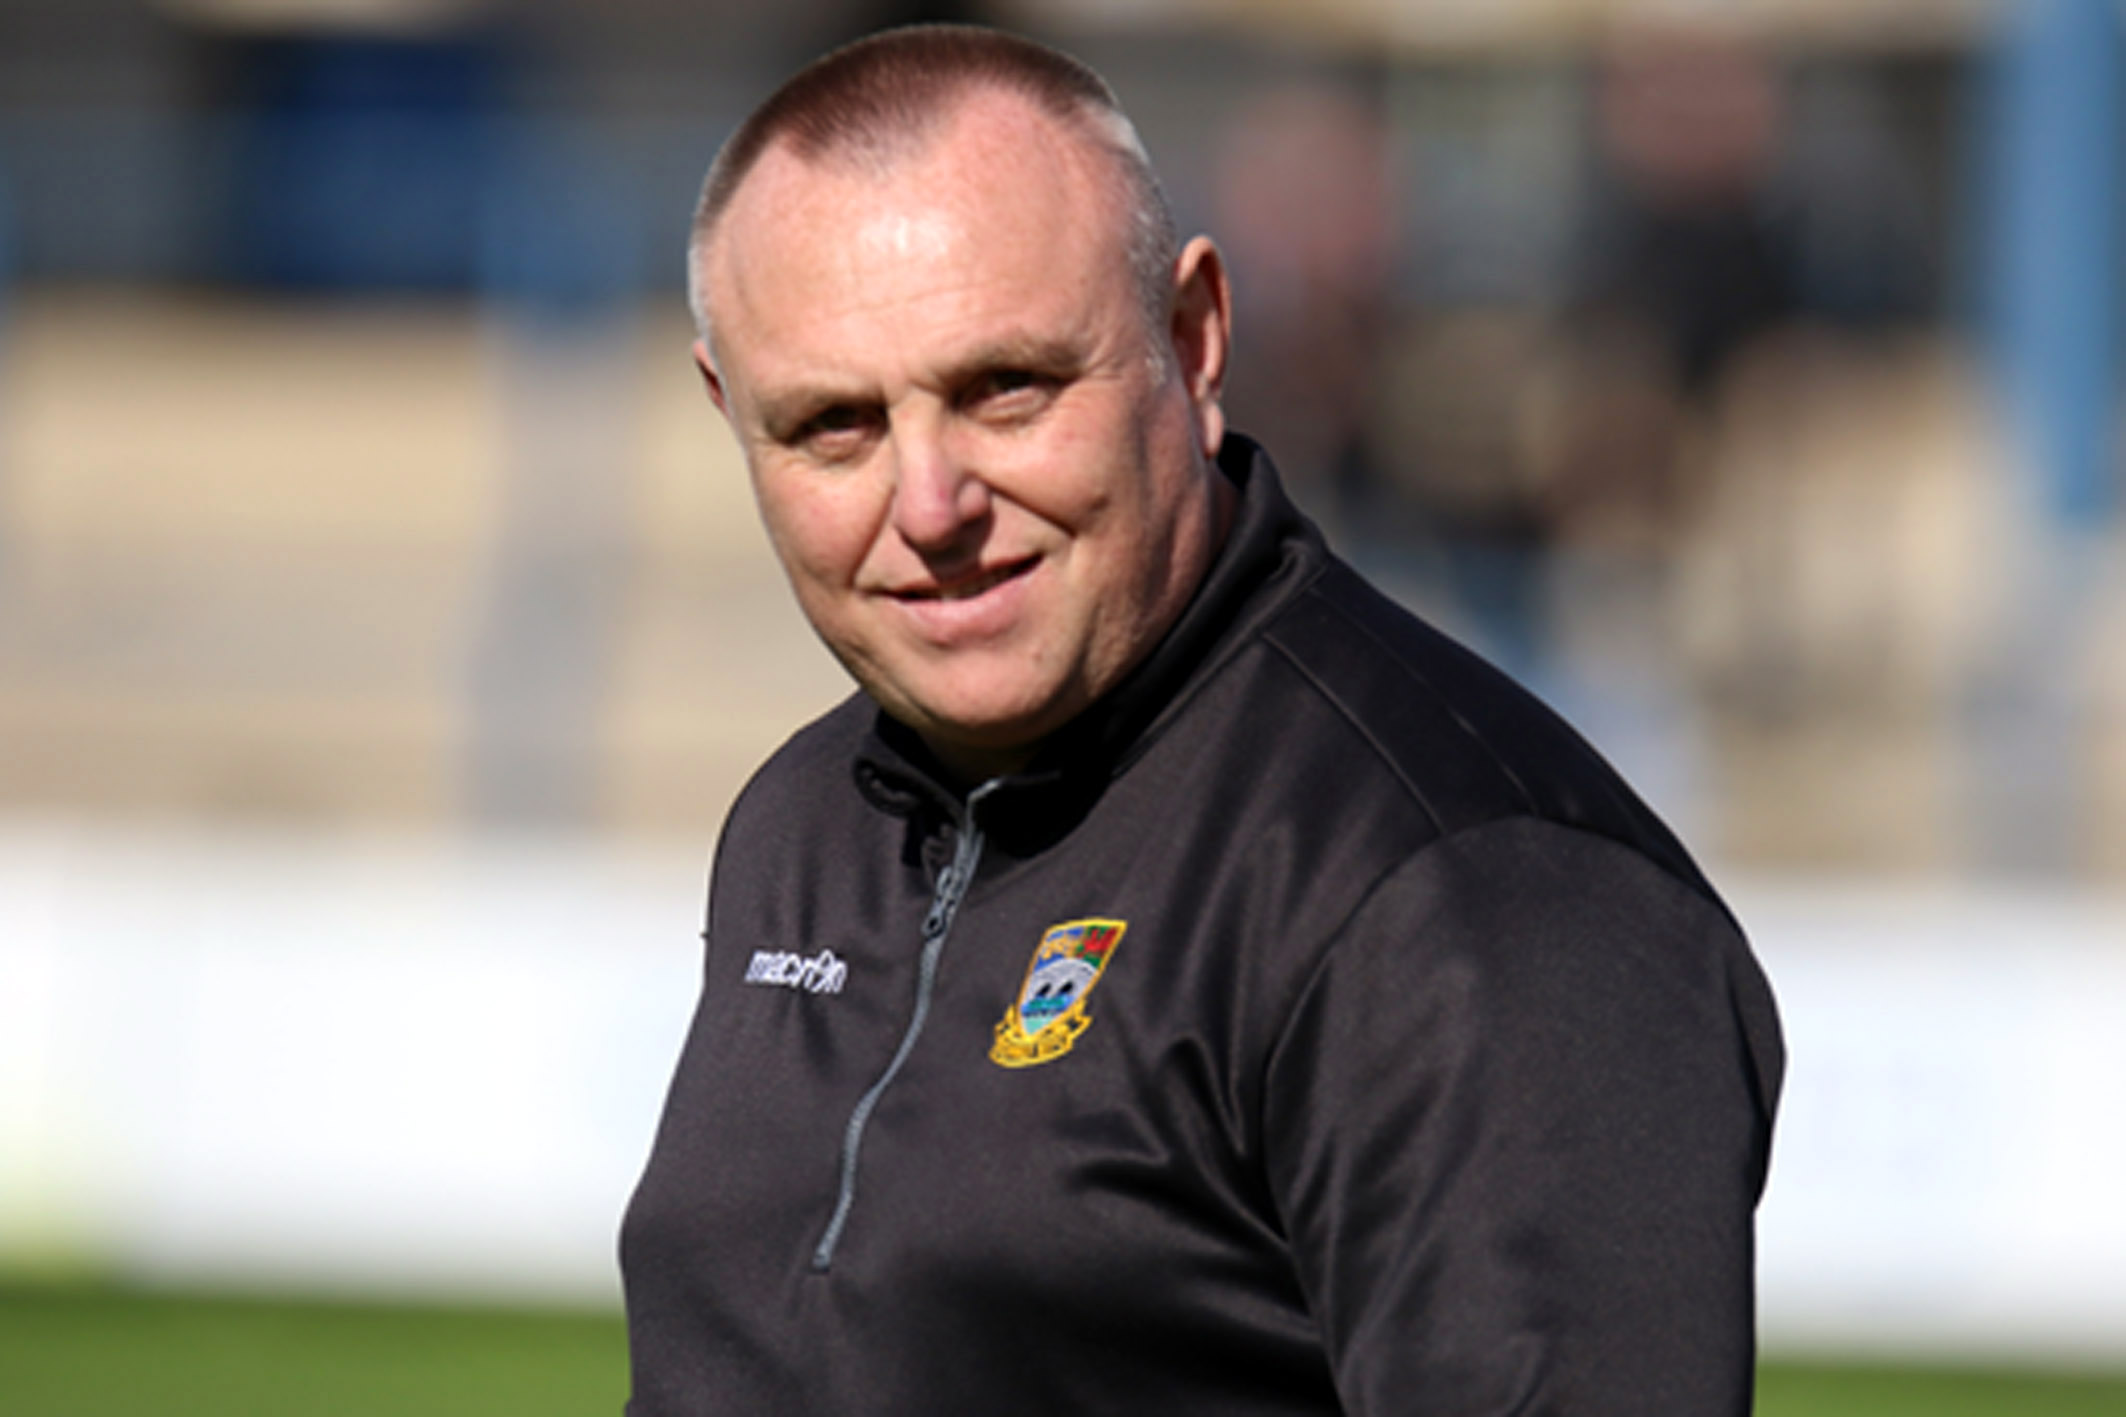 REUNION: Former Bedwas head coach Steve Law, now Cardiff's director of rugby